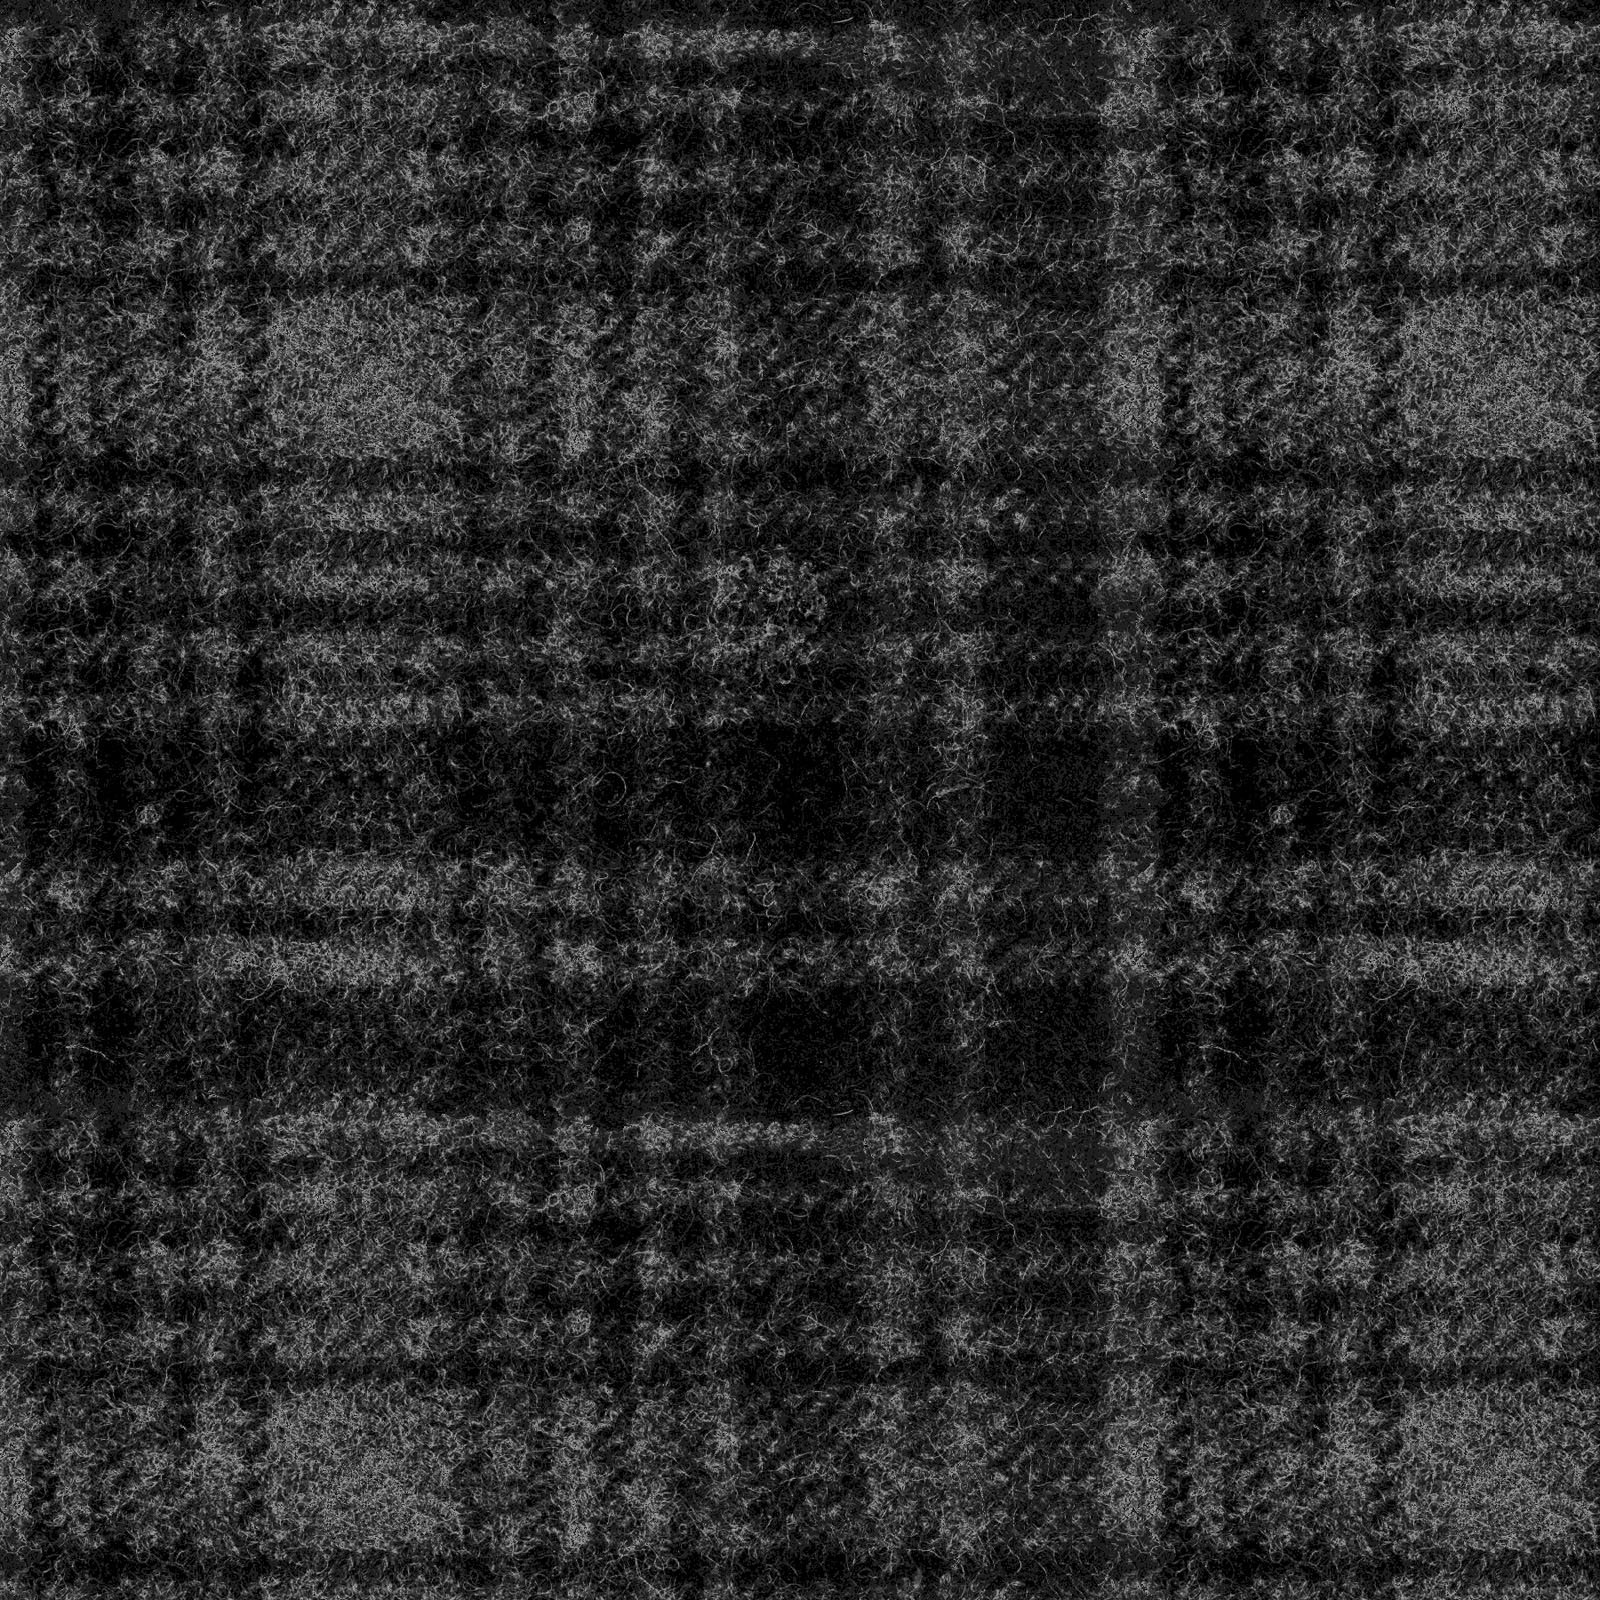 Woolies Flannel - Windowpane - Black - 1/2 Yd Cuts